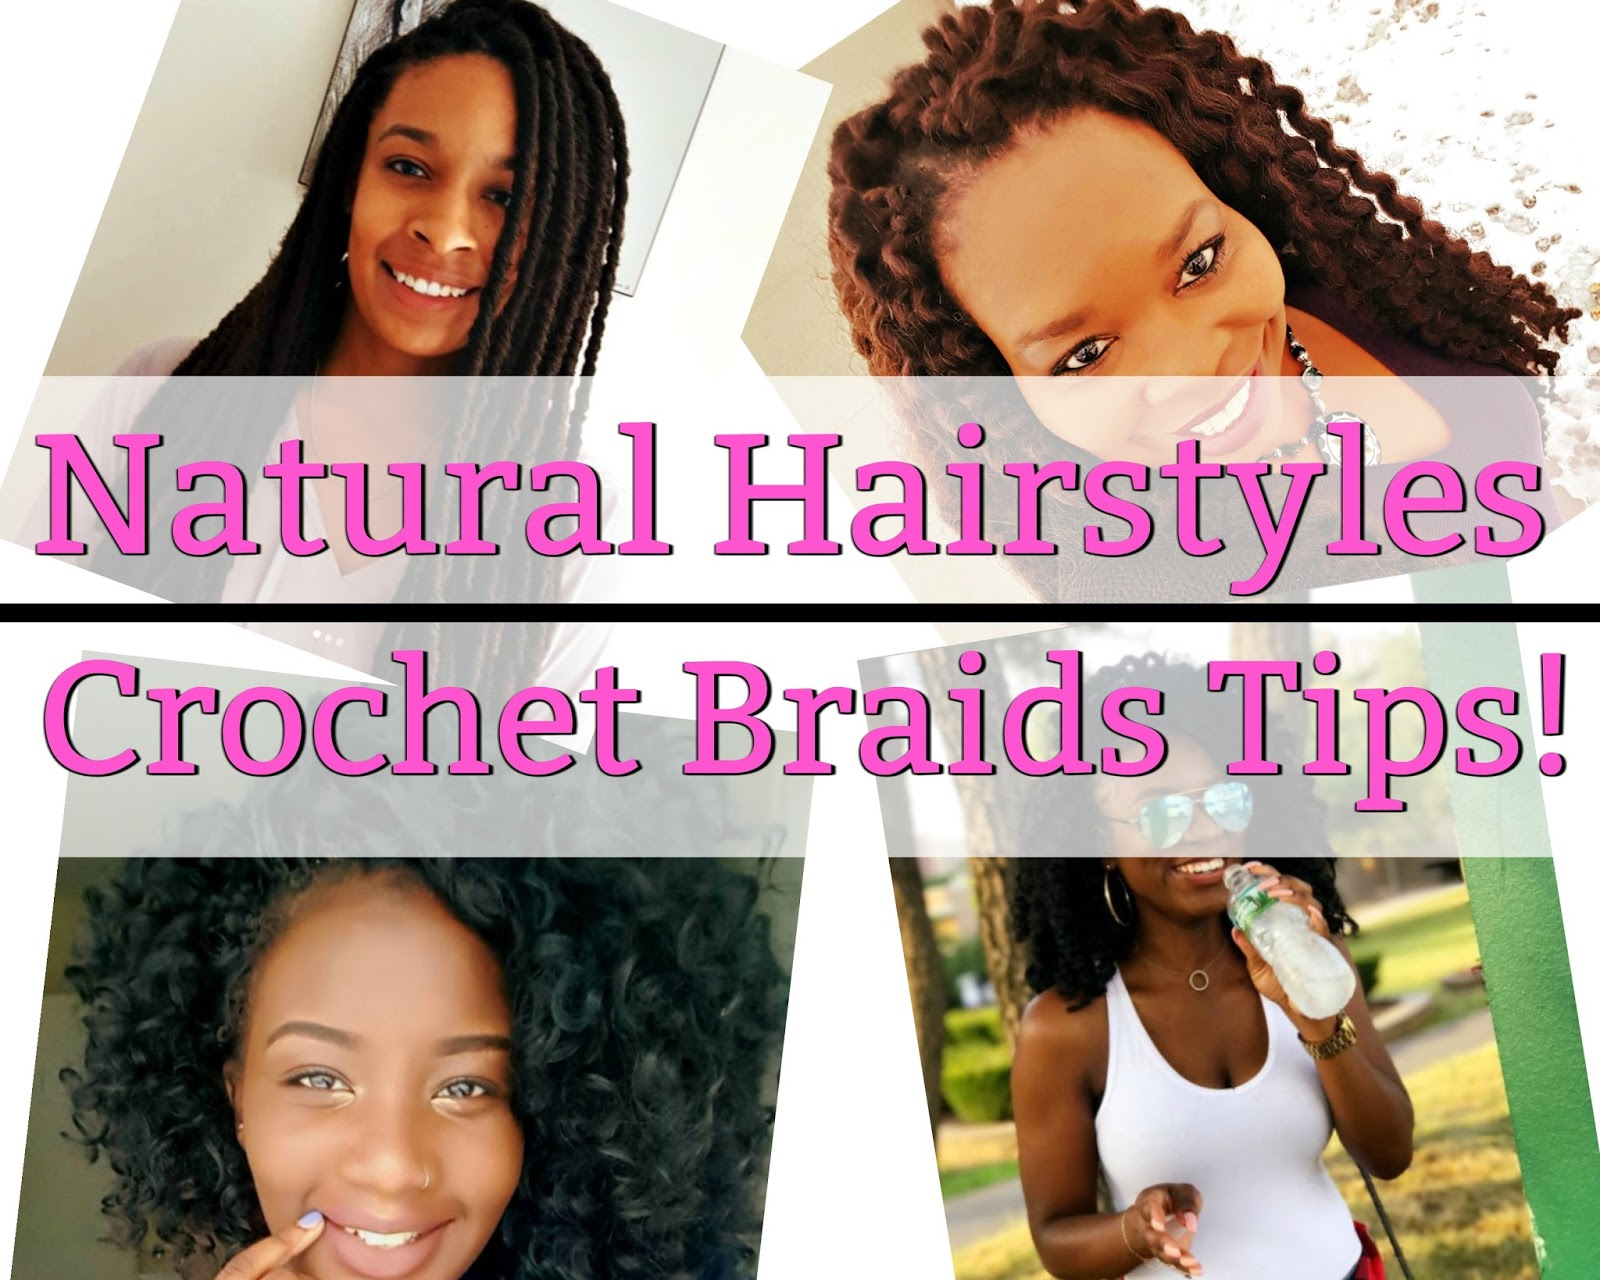 Crochet braids are still trendy and fun but not much information is out here on how to clean, moisturize or even how long to keep them in. We've got the deets to keep your hair healthy and your Crochet Braids looking awesome!